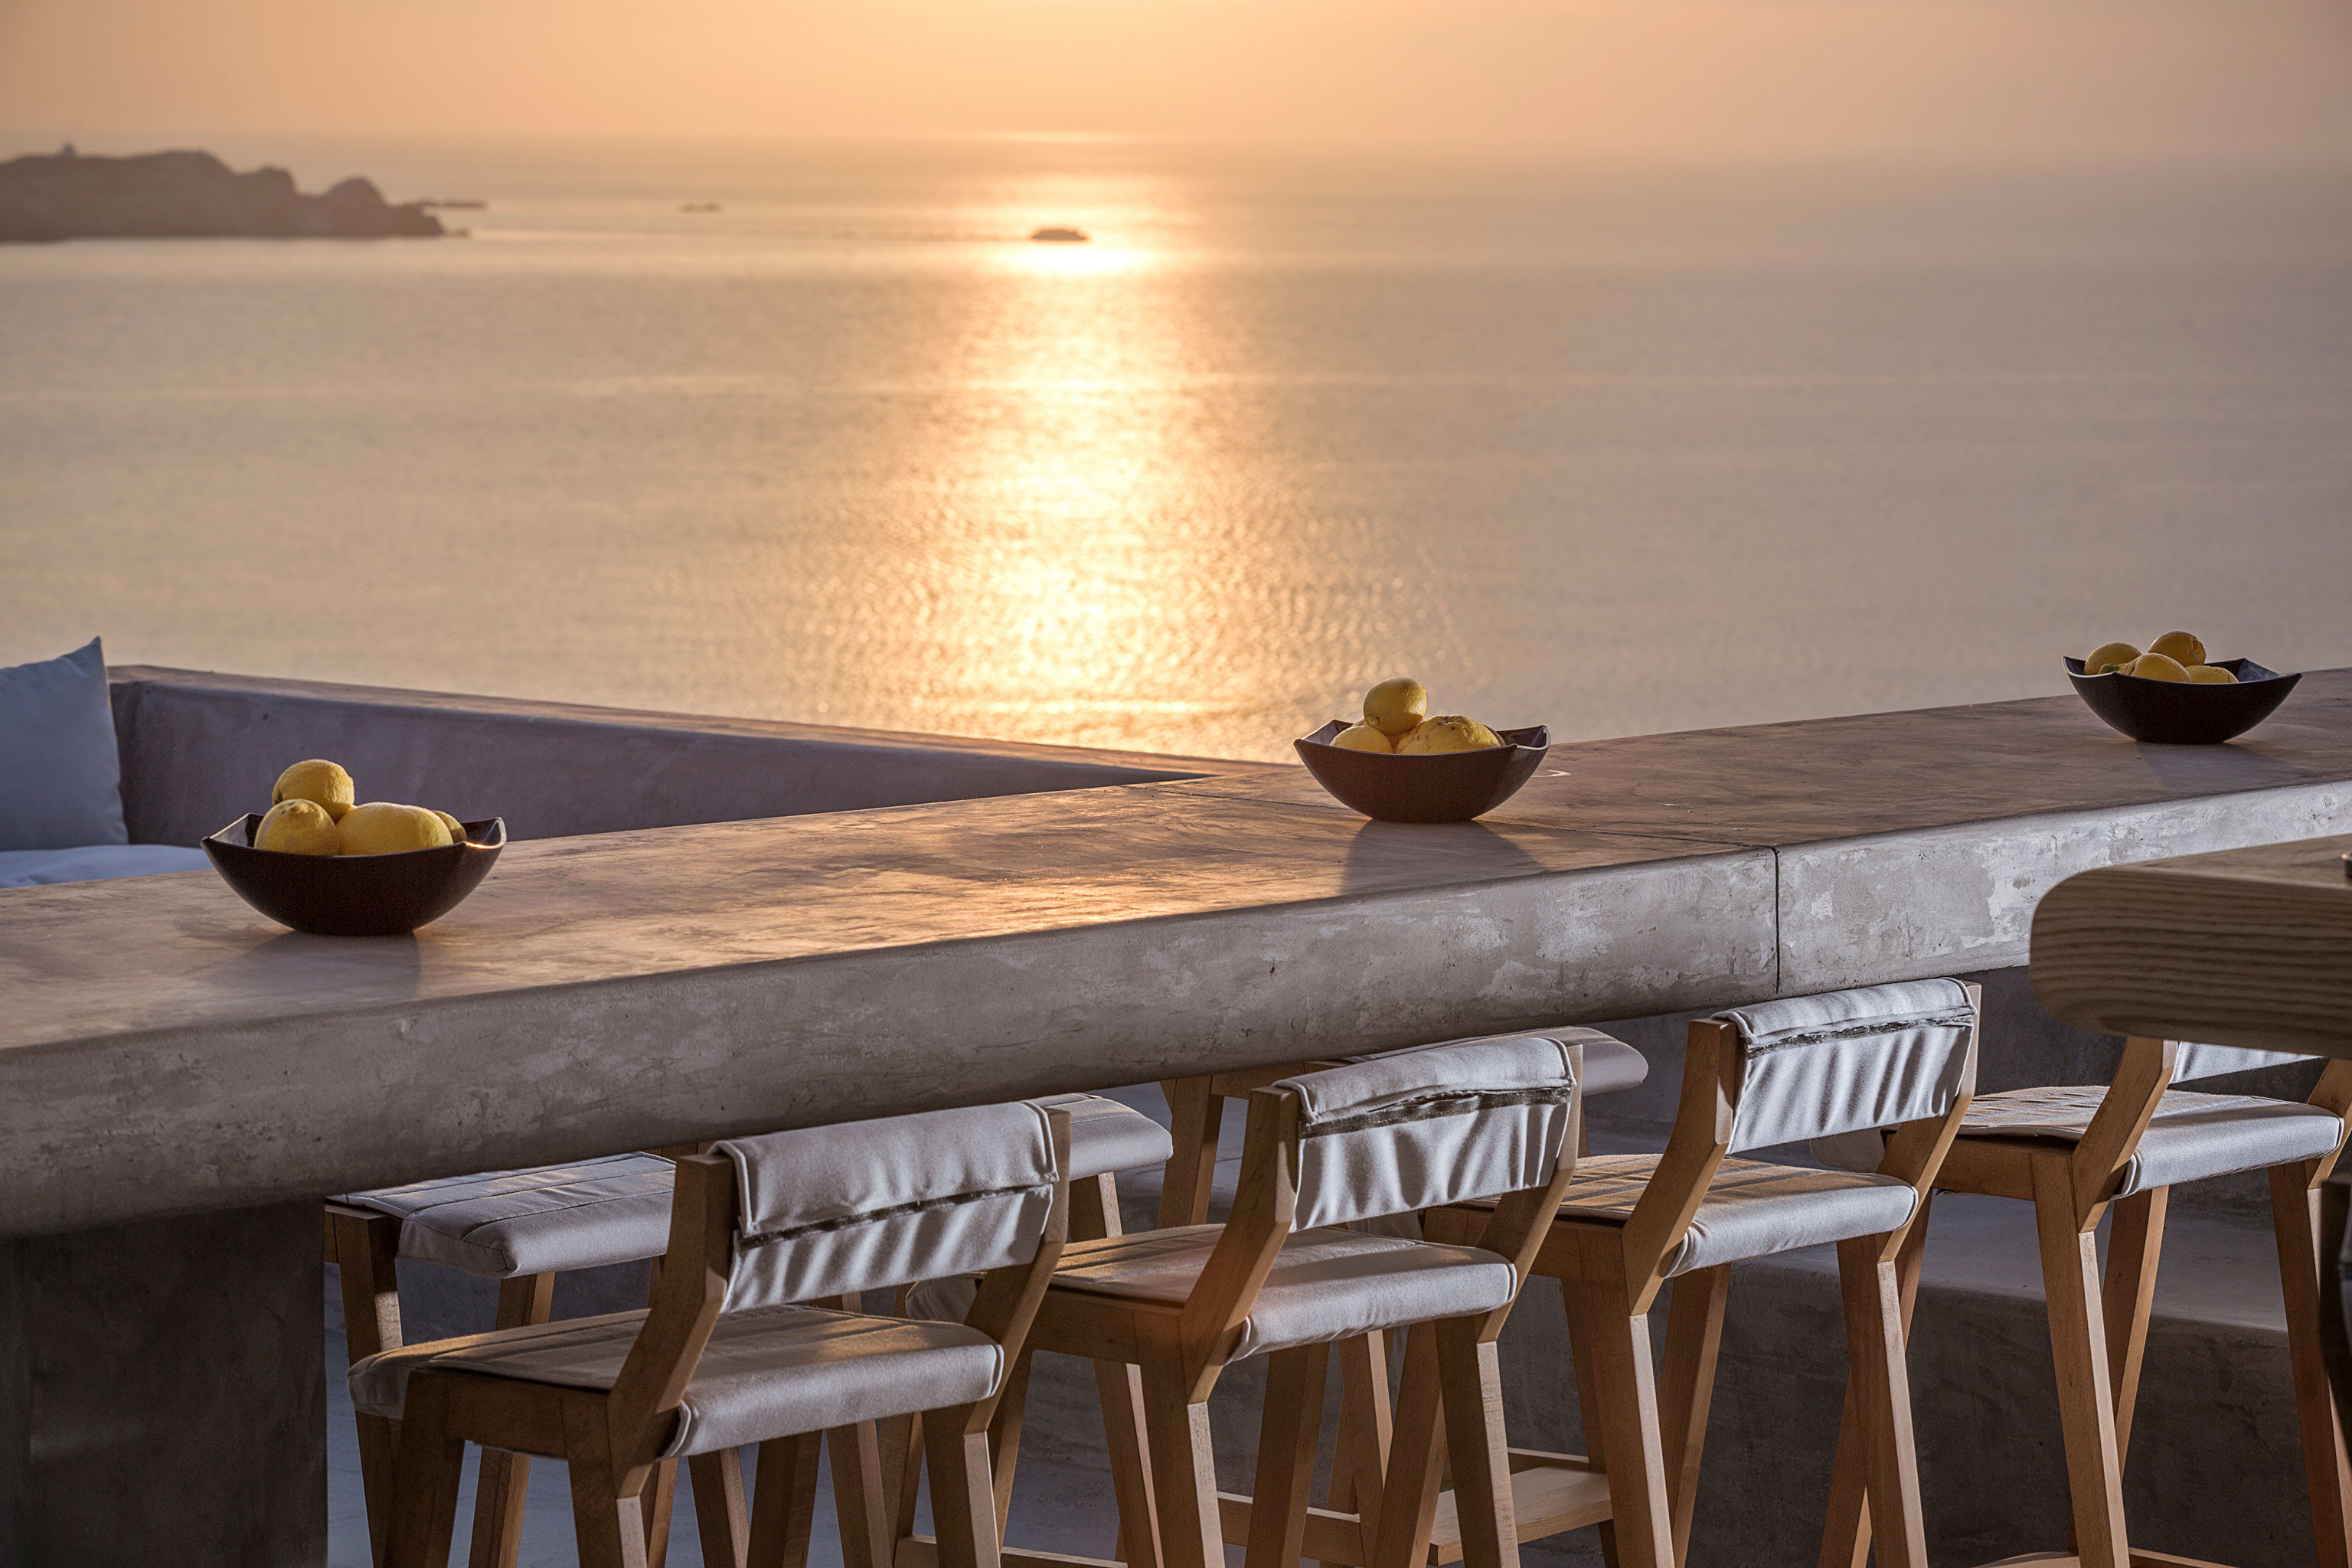 Bar Dining Drink Eat Luxury Ocean Scenic views Trip Ideas water chair wooden restaurant dining table